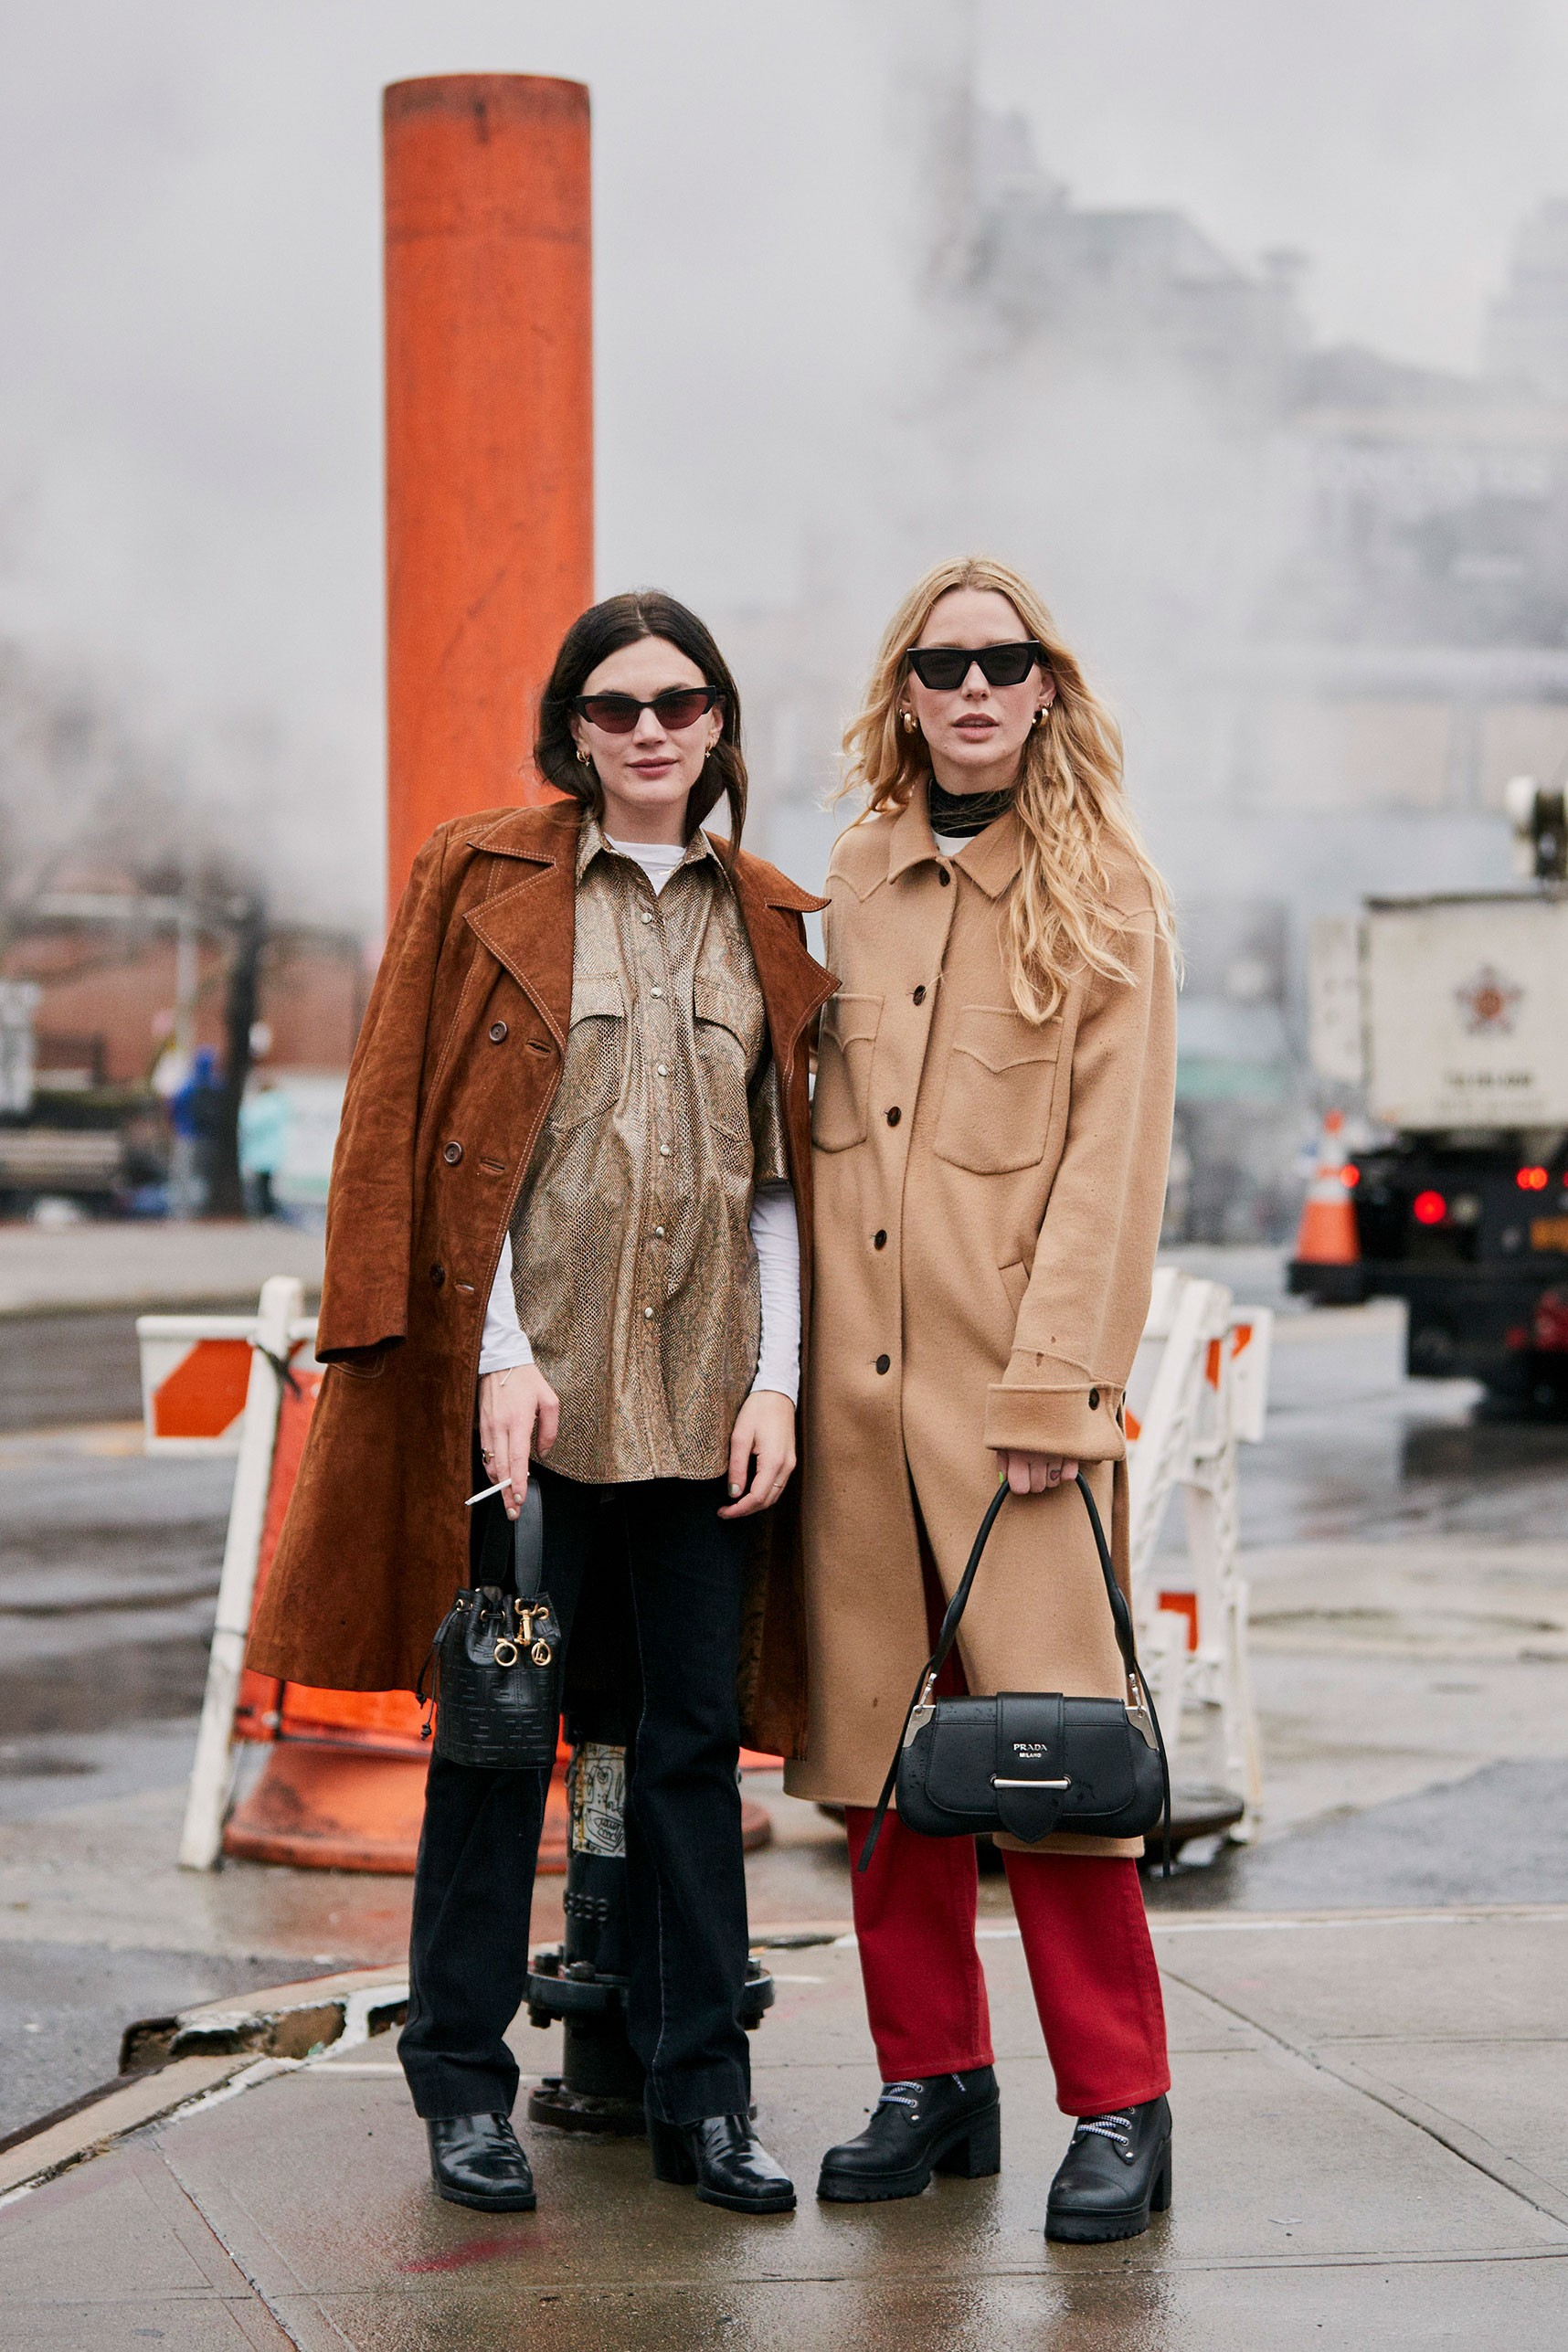 Camel Coats Look Good On Everyone, Here Are a Bunch of Cute Ones